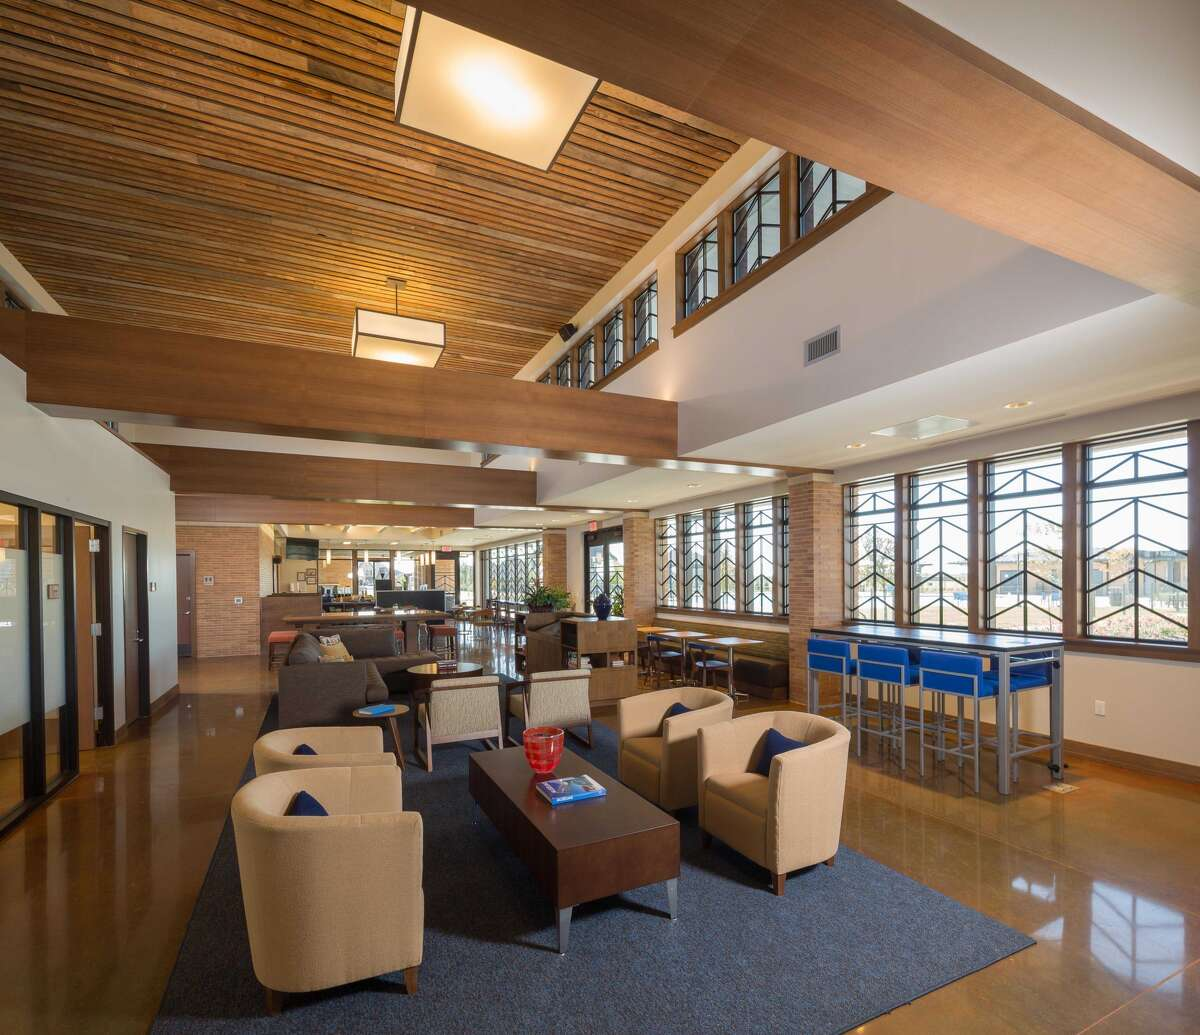 Rorick House, the 9,000-square-foot amenities center at Elyson, has areas for lounging, community meetings and games.